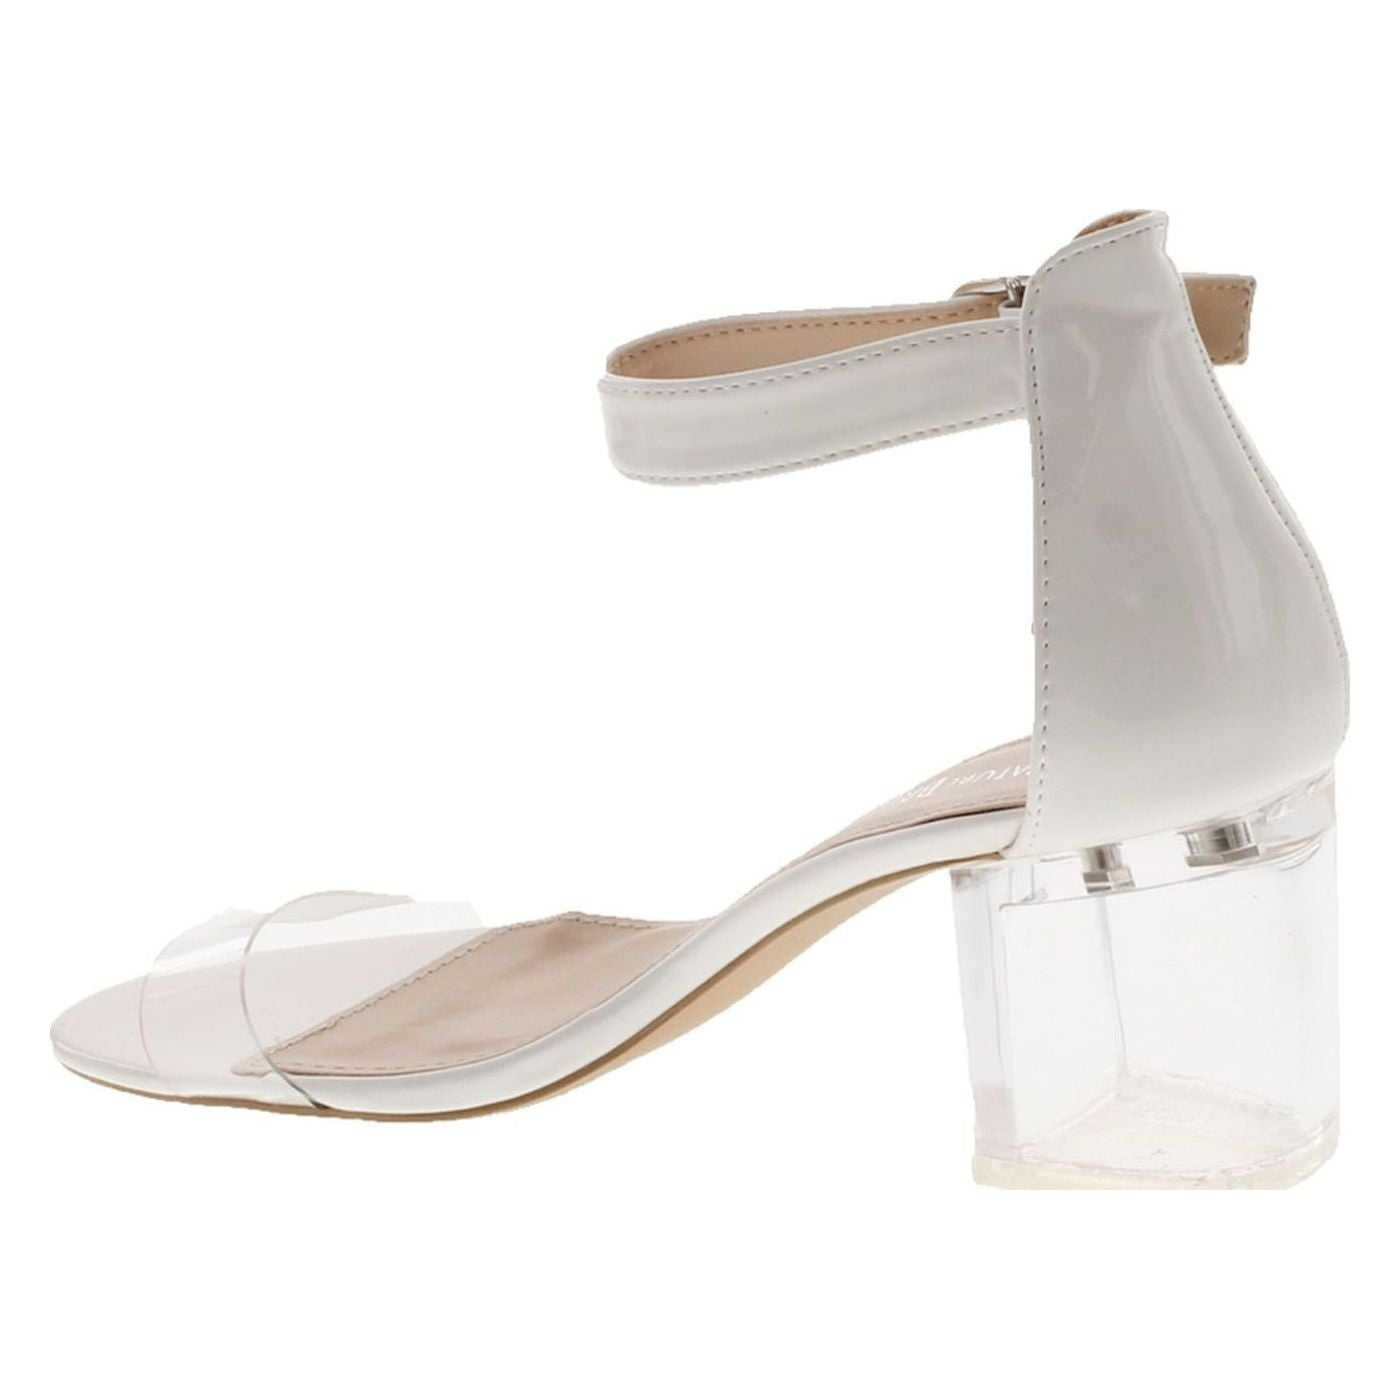 9f93fe0c9 Shop Nature Breeze See Thru-01 Women's Lucite Chunky Heel Ankle Strap Dress  Sandals - Free Shipping On Orders Over $45 - Overstock - 20908570